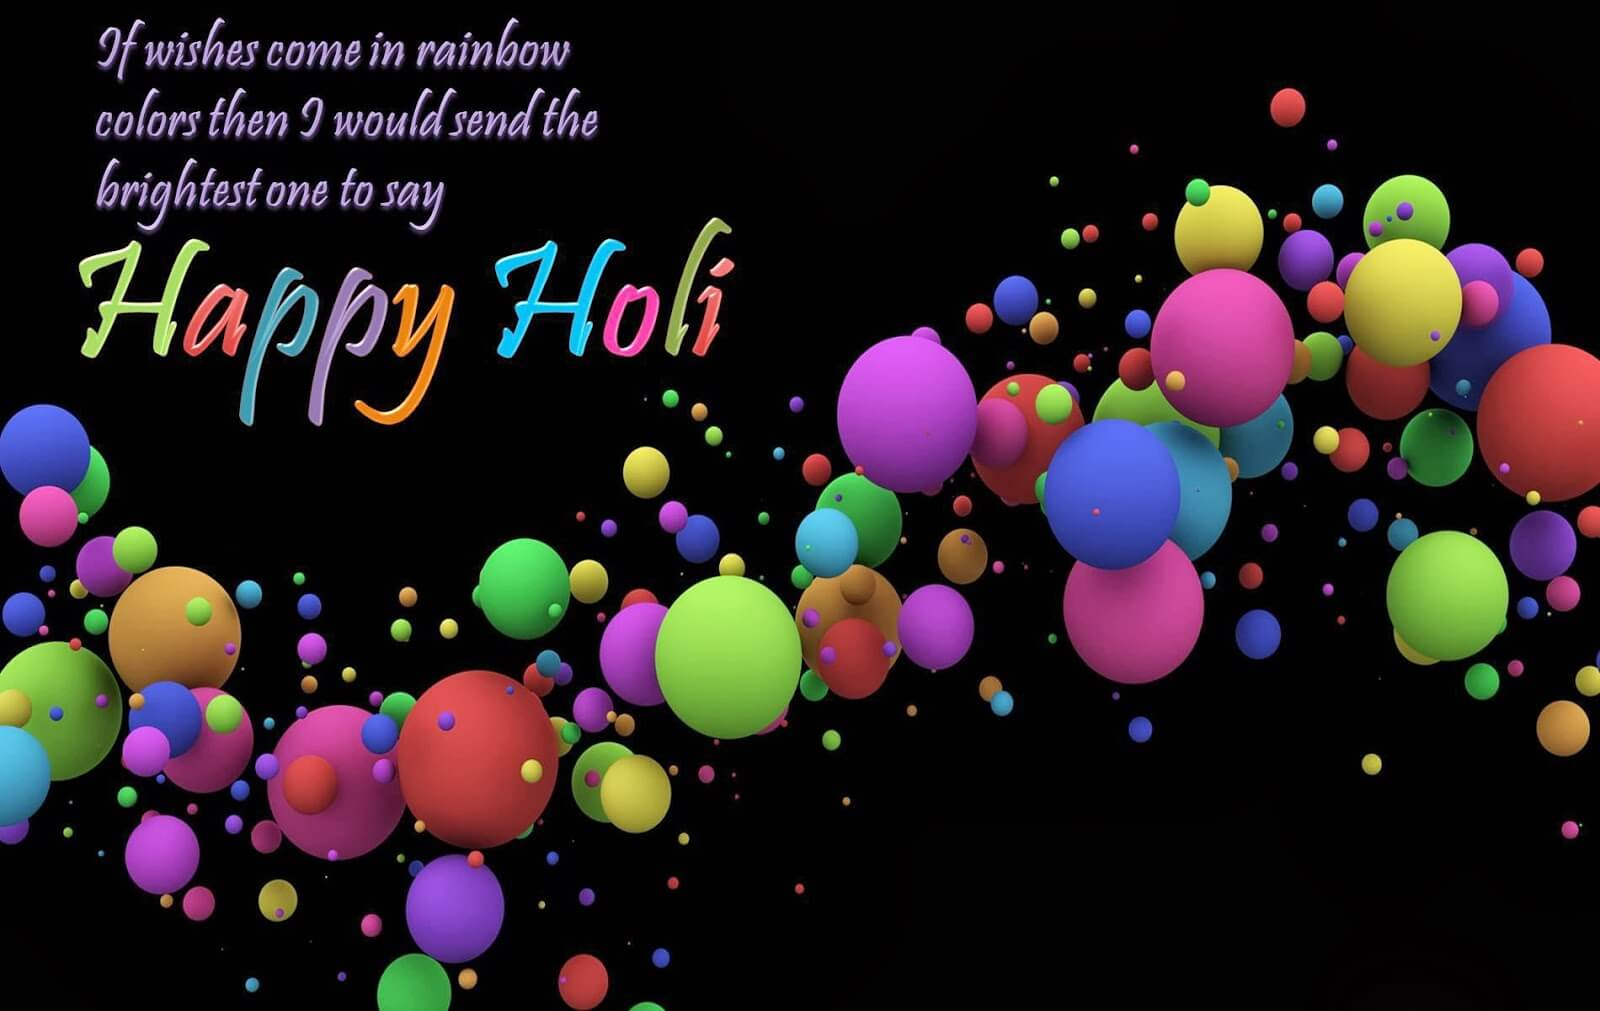 Happy Holi HD Wallpapers Images